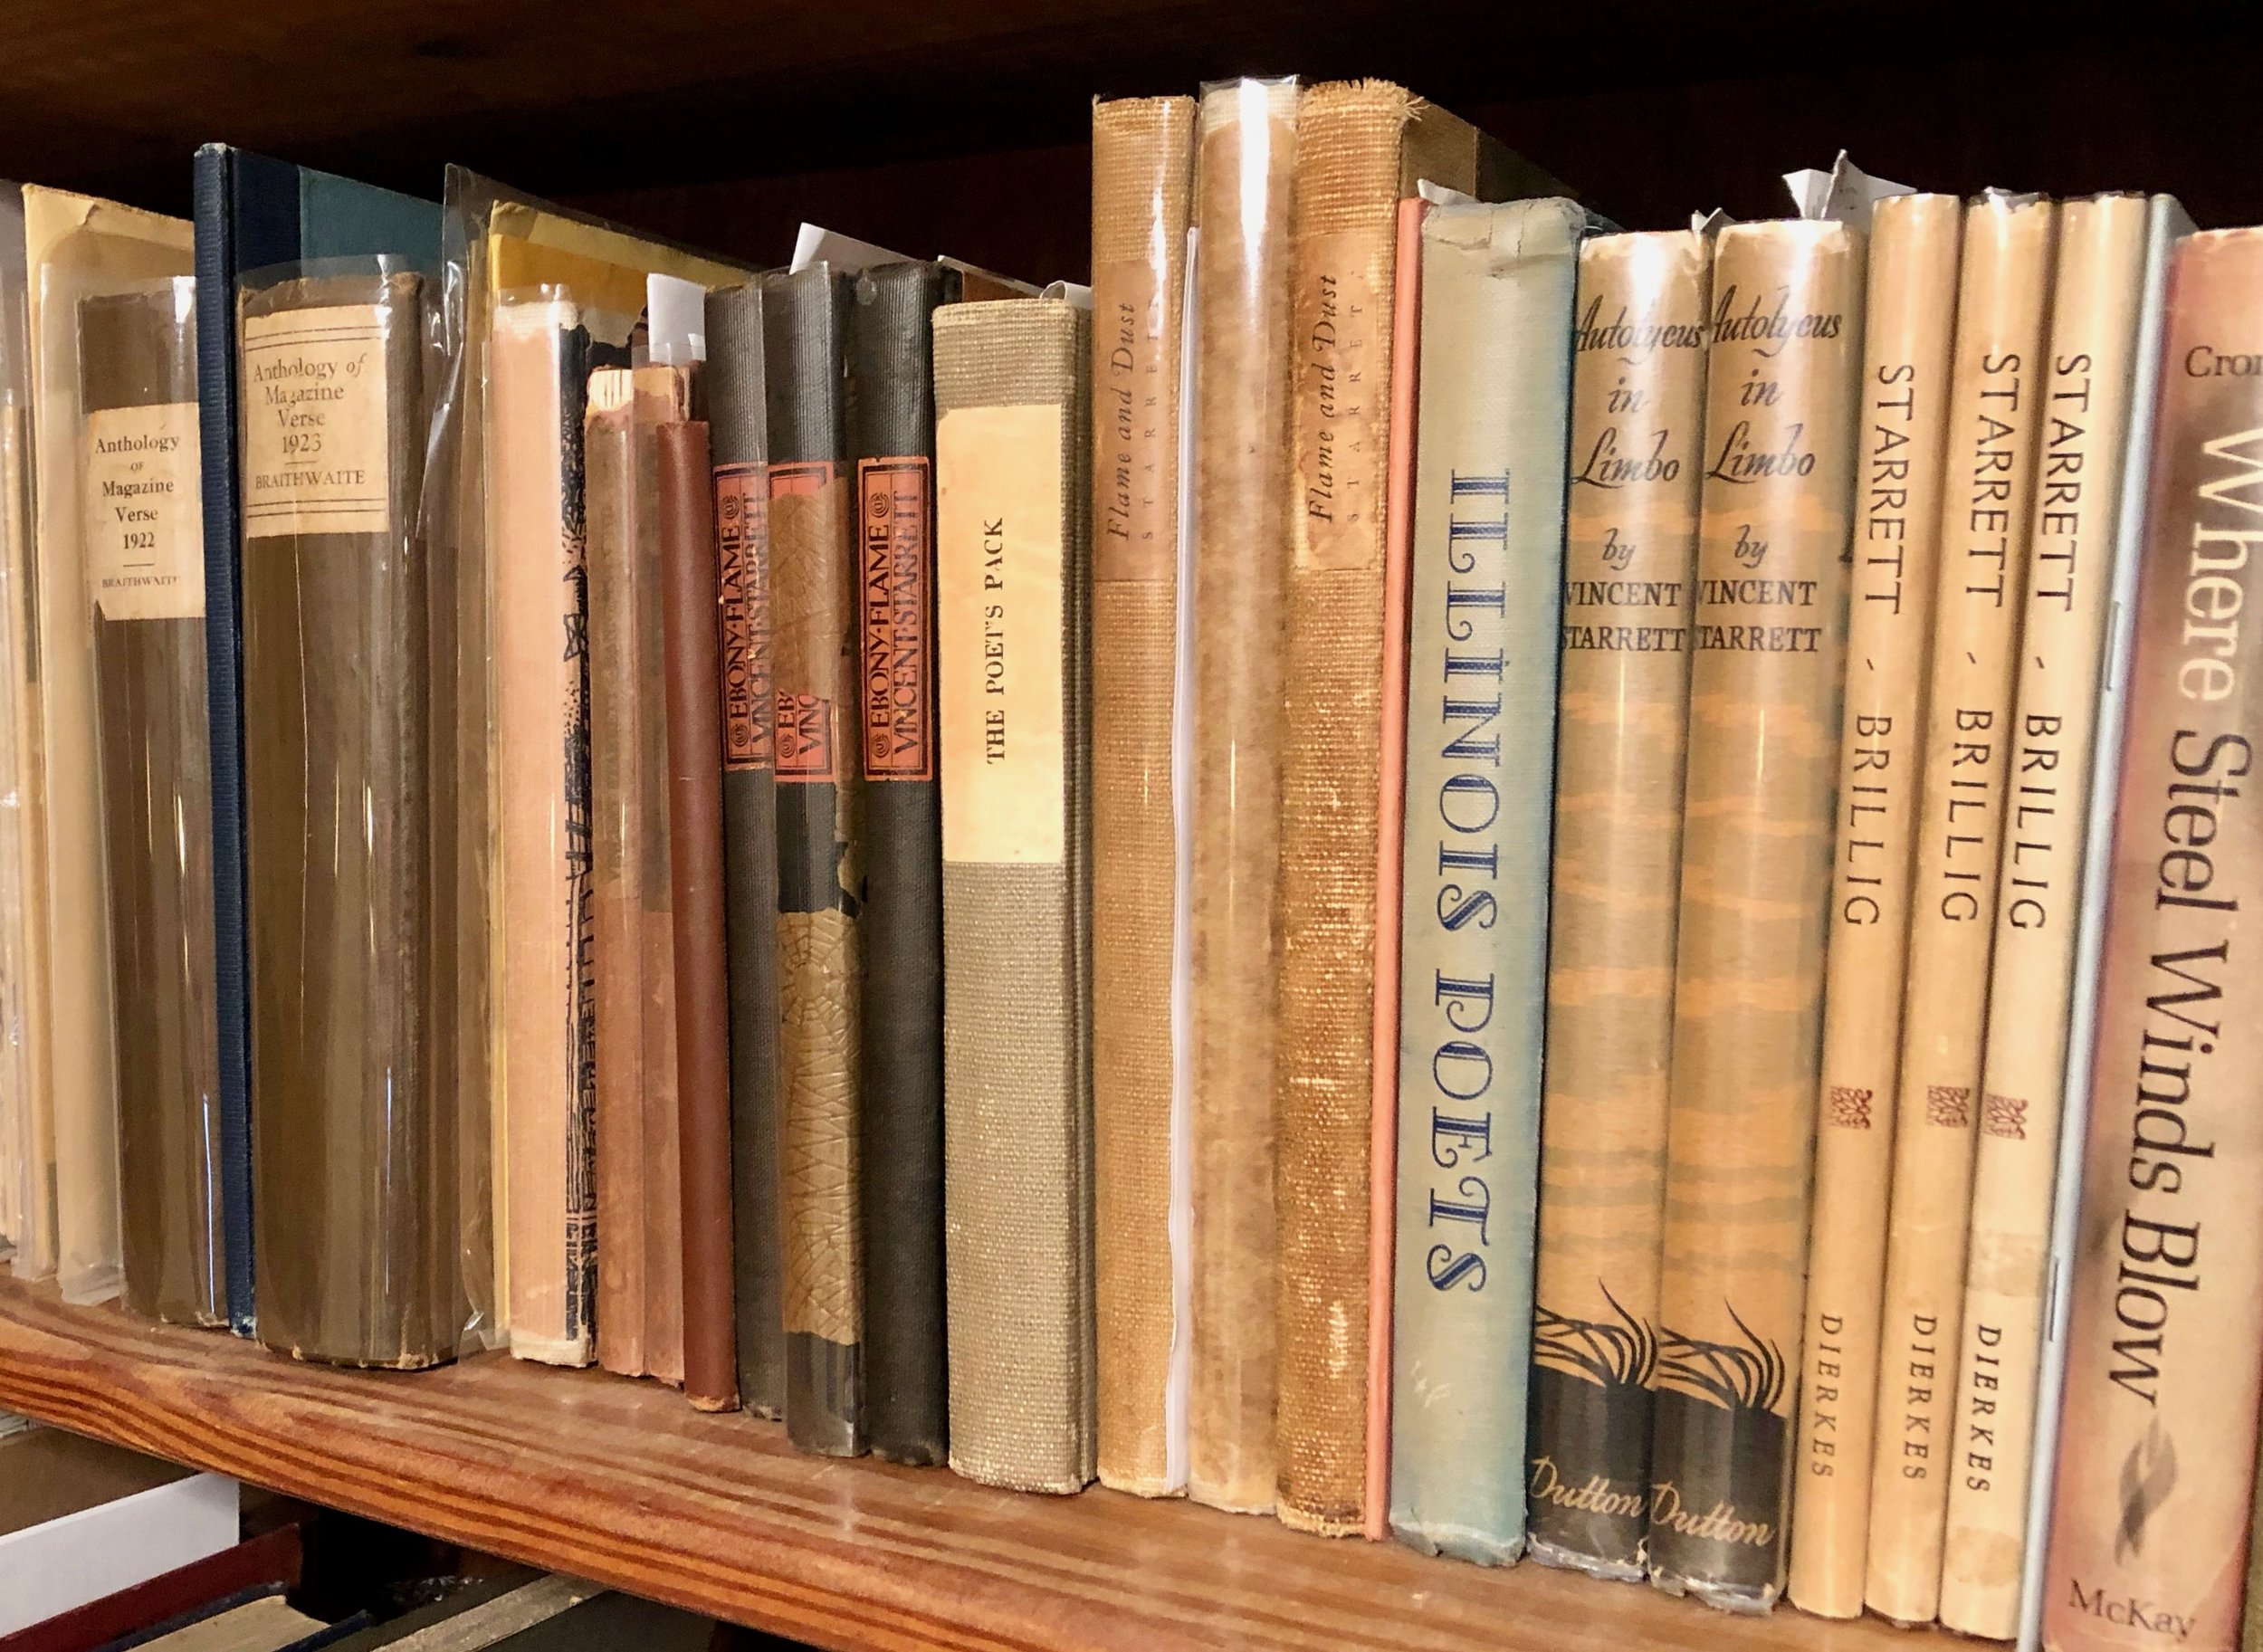 A shelf of Vincent Starrett poetry, from the author's collection.